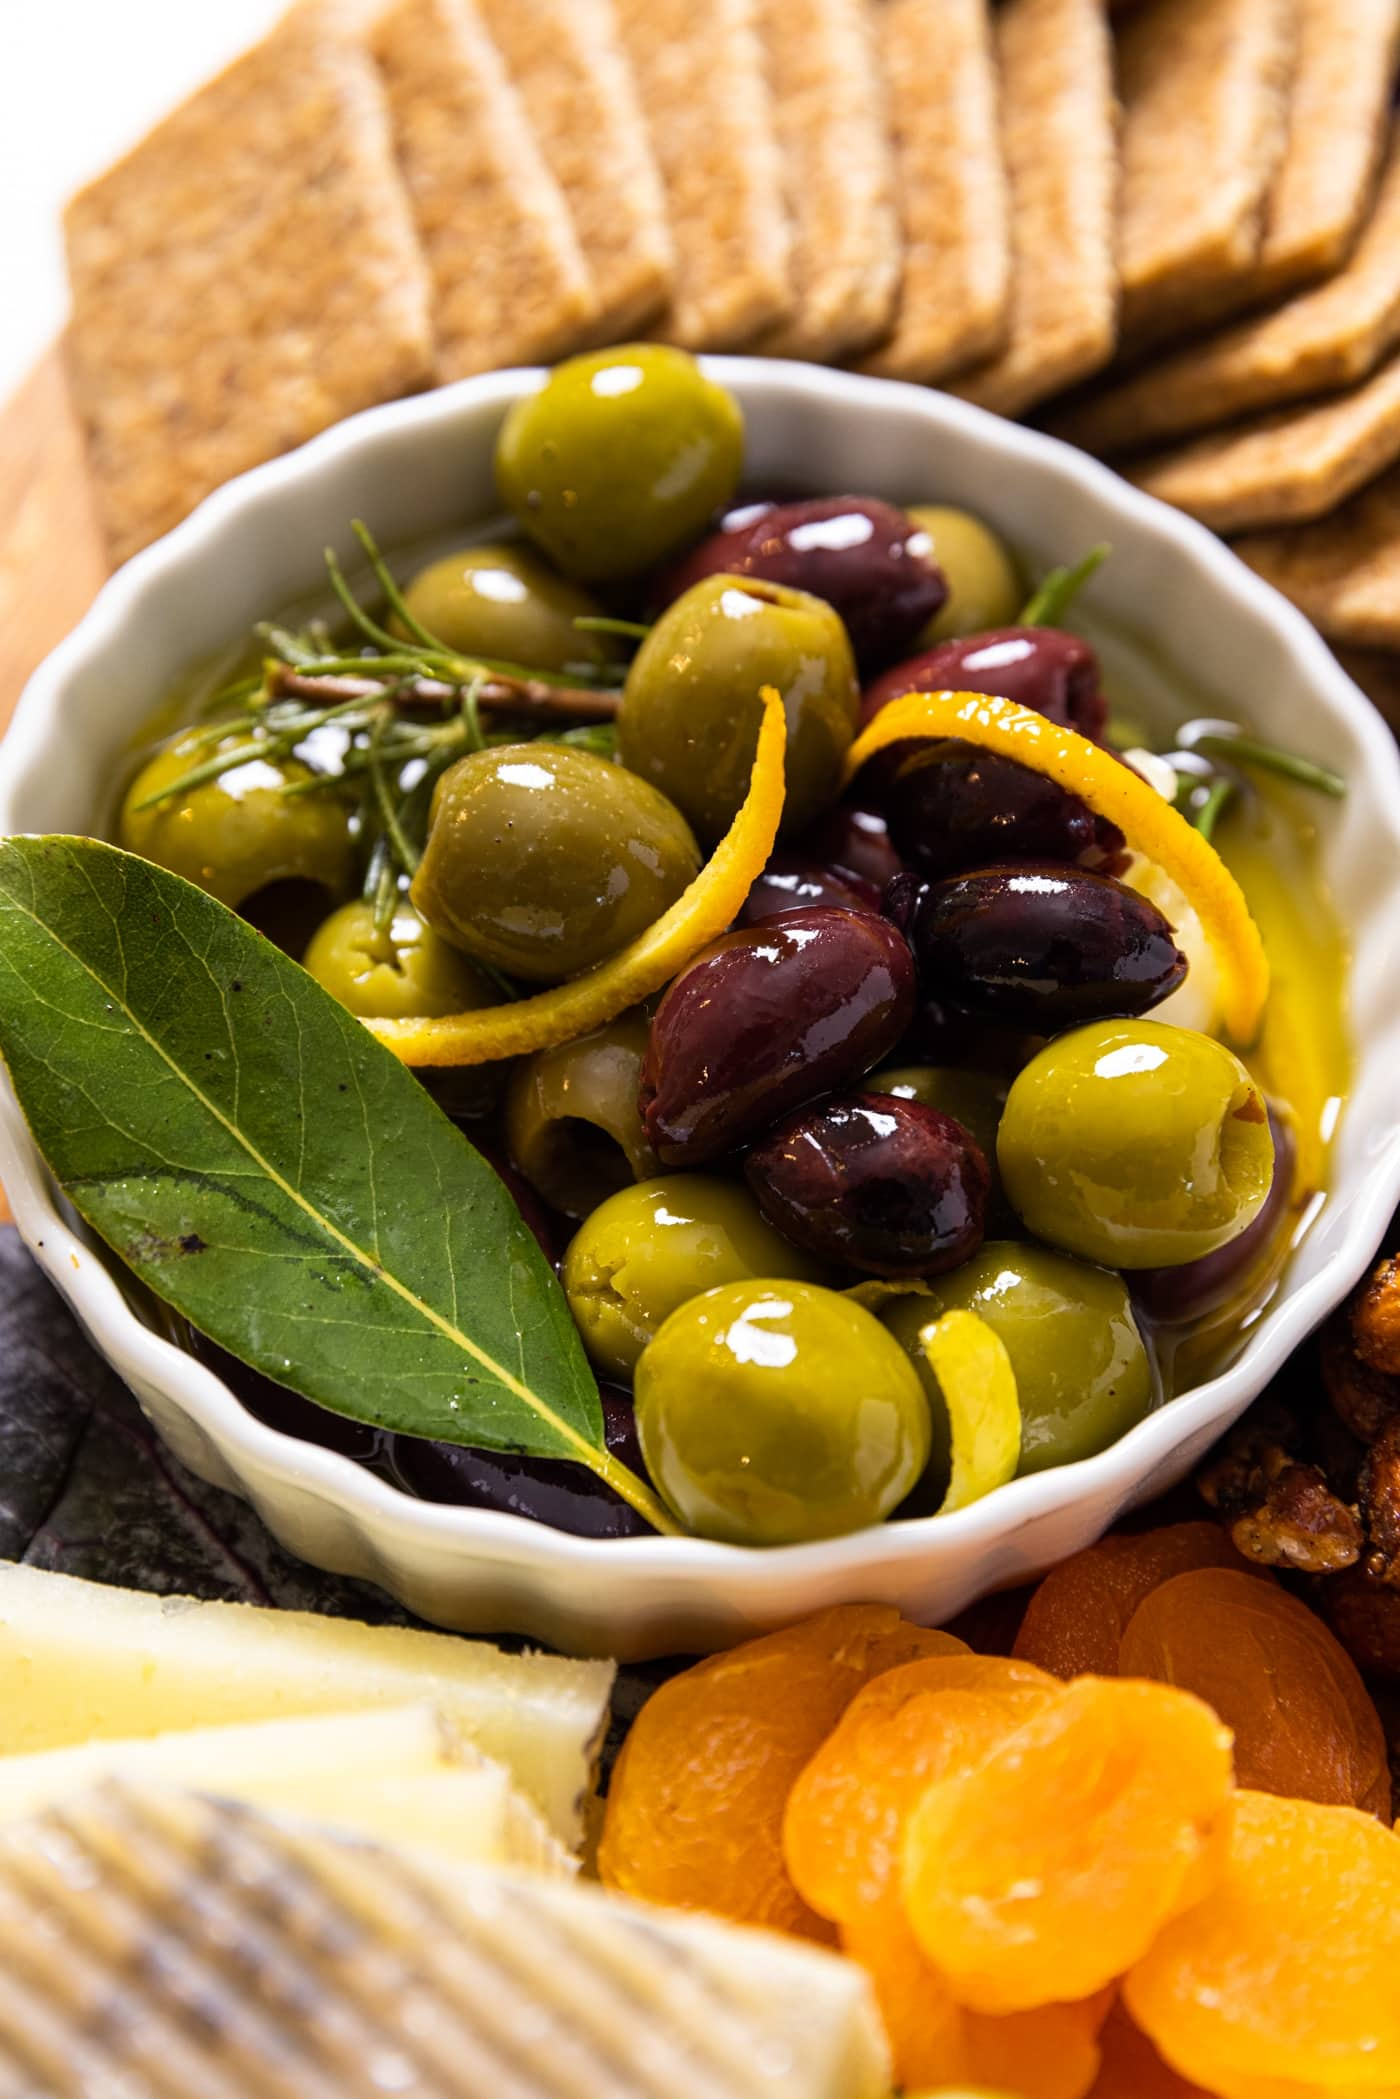 Small white bowl filled with marinated olives with slices of citrus zest sitting on wood board with crackers and dried apricots